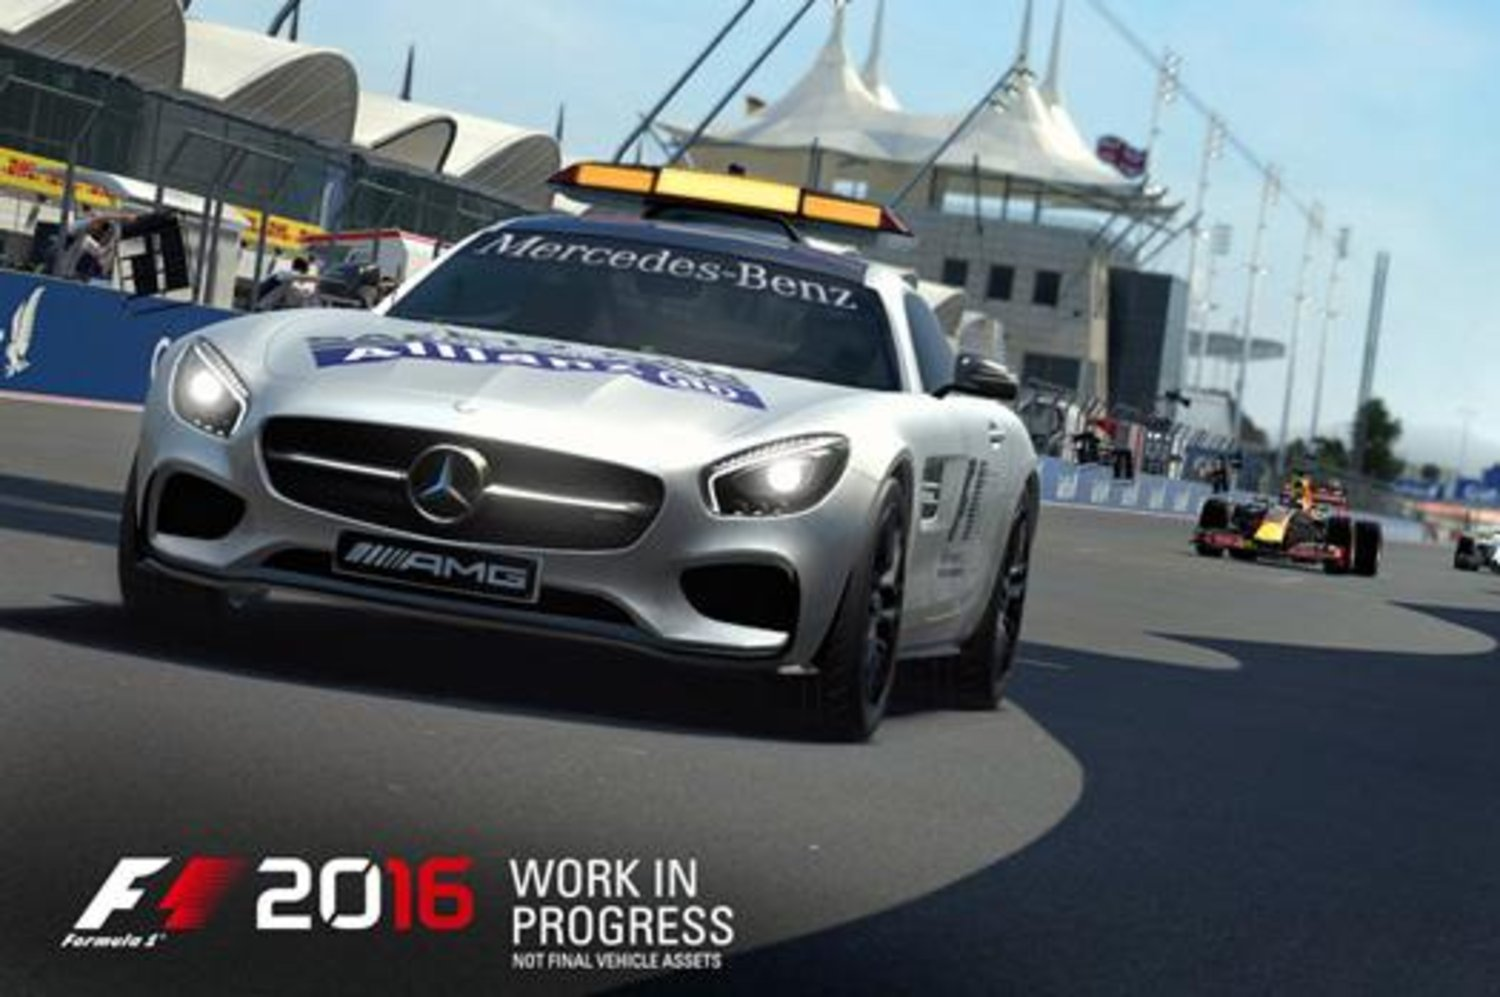 f1-2016-the-safety-car-will-make-an-appearance